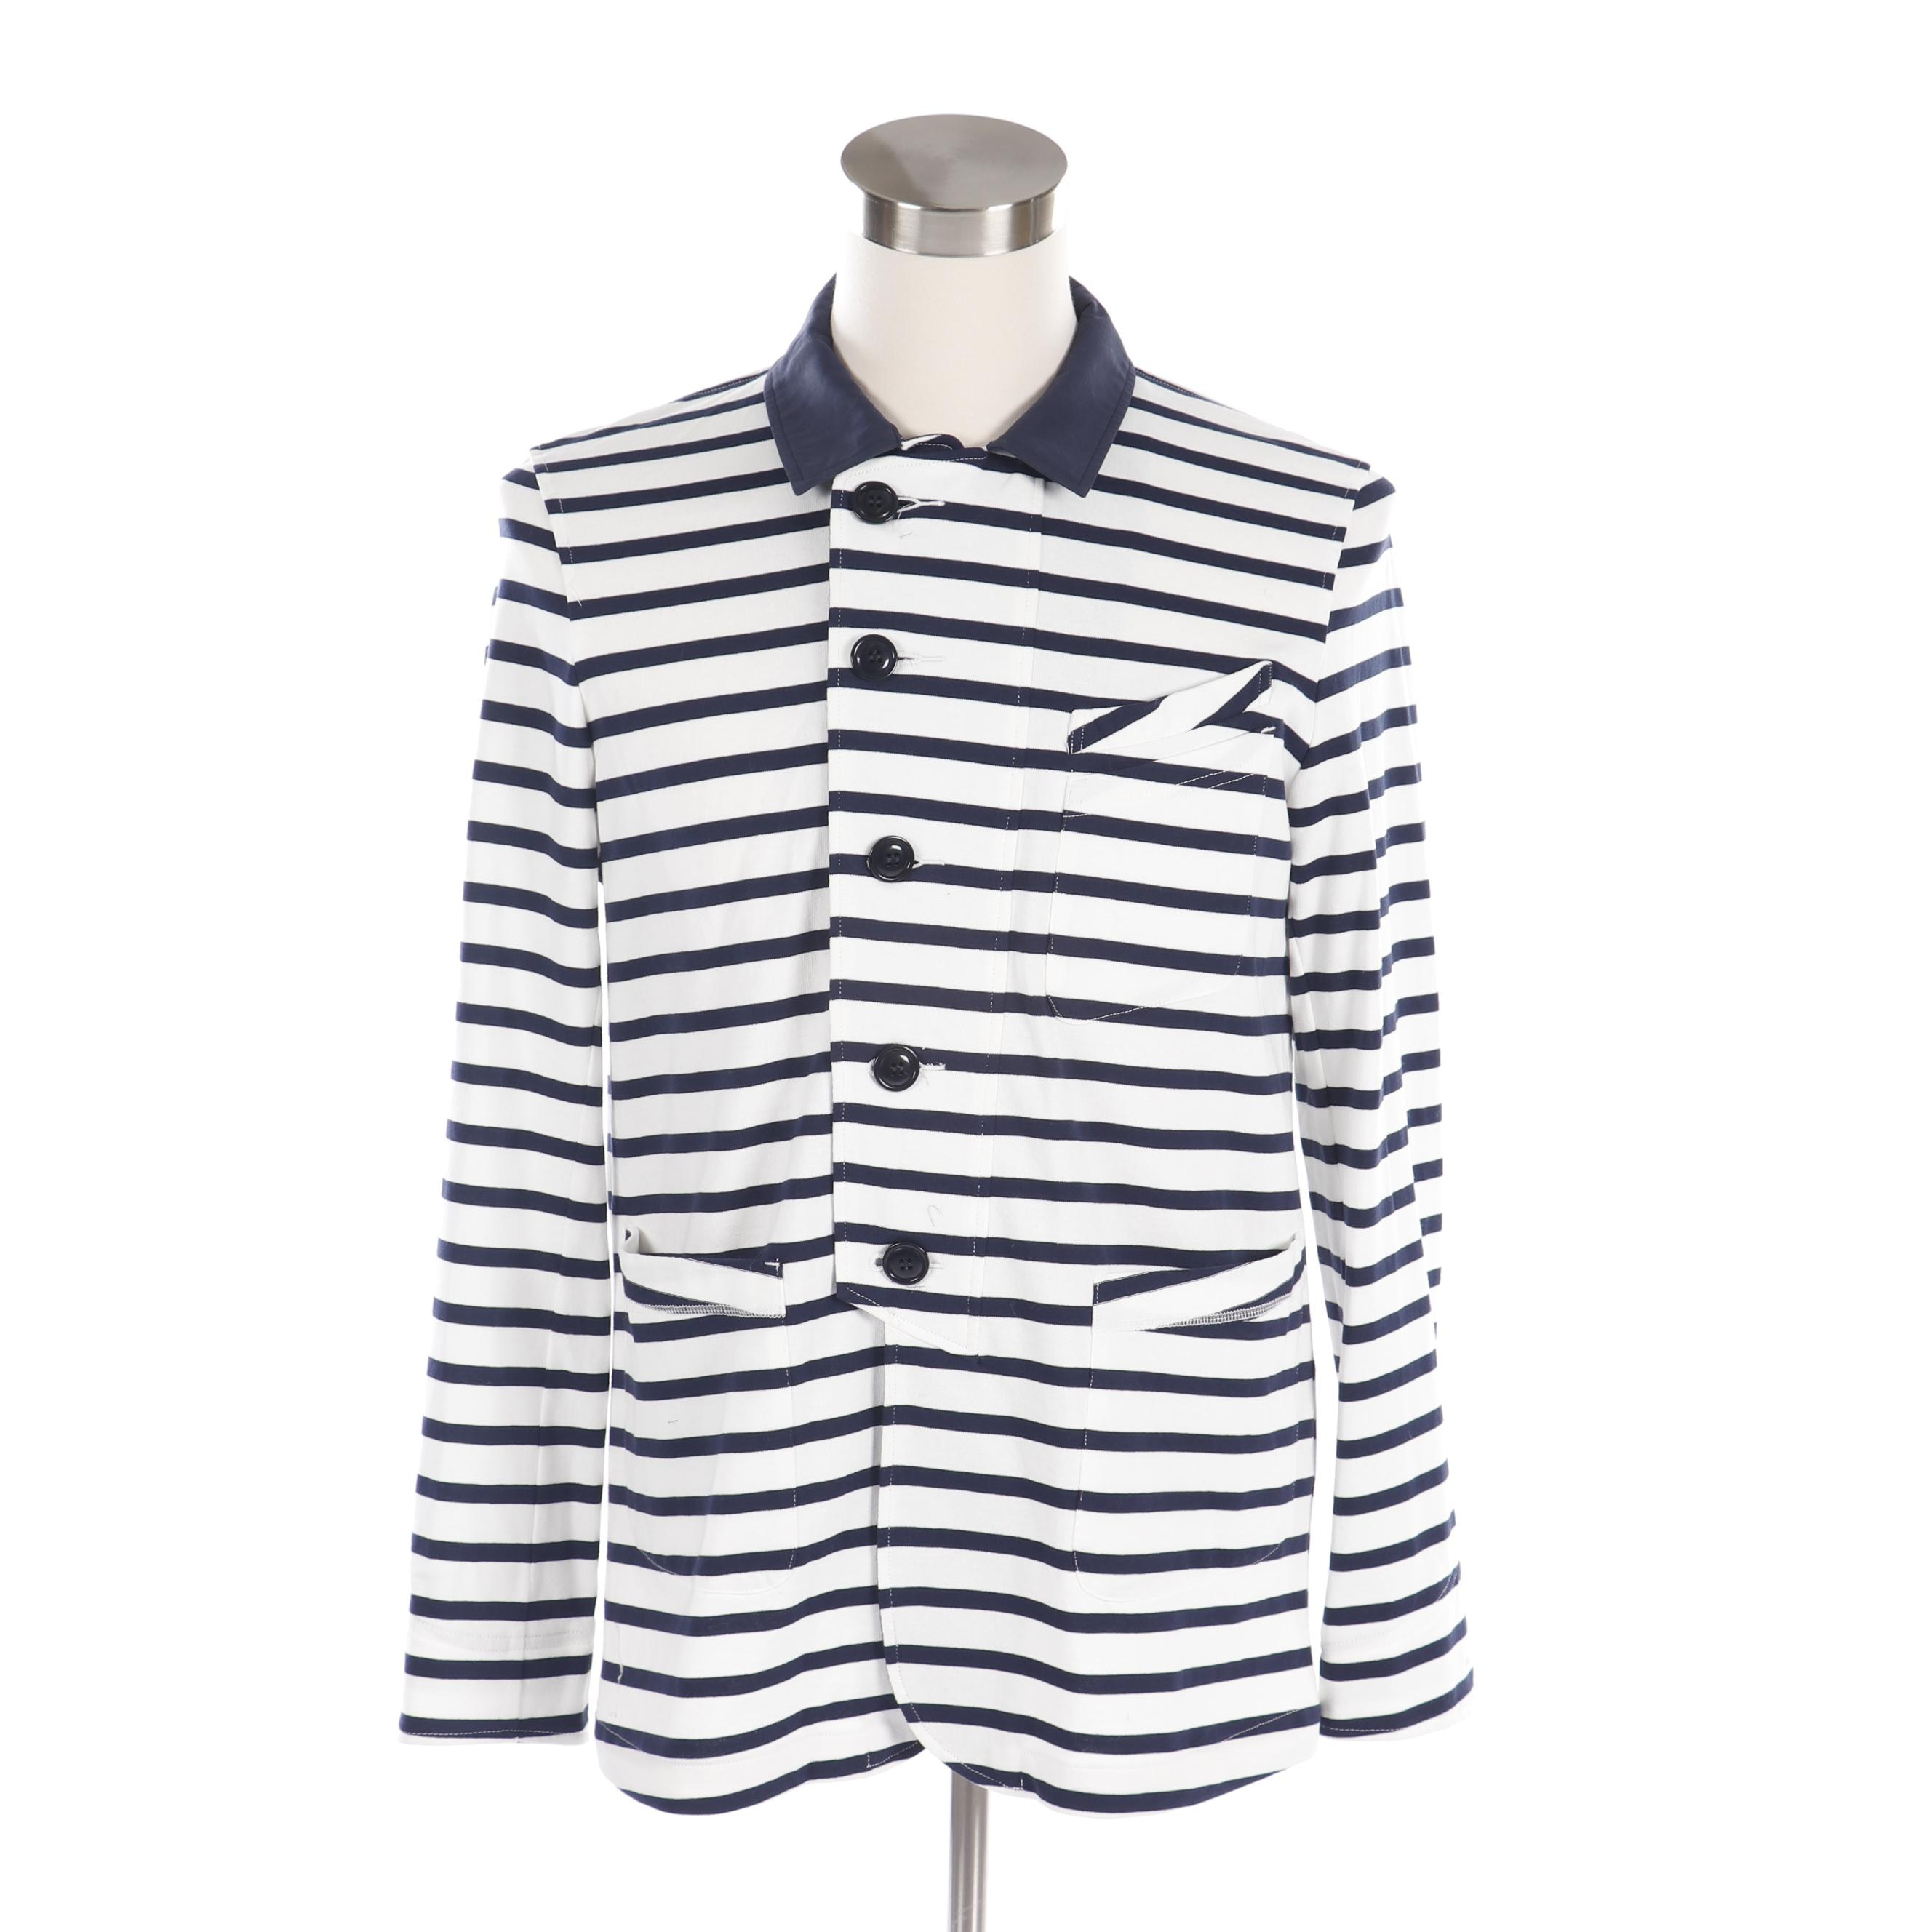 Men's Cash CA England Navy and White Striped Shirt Jacket